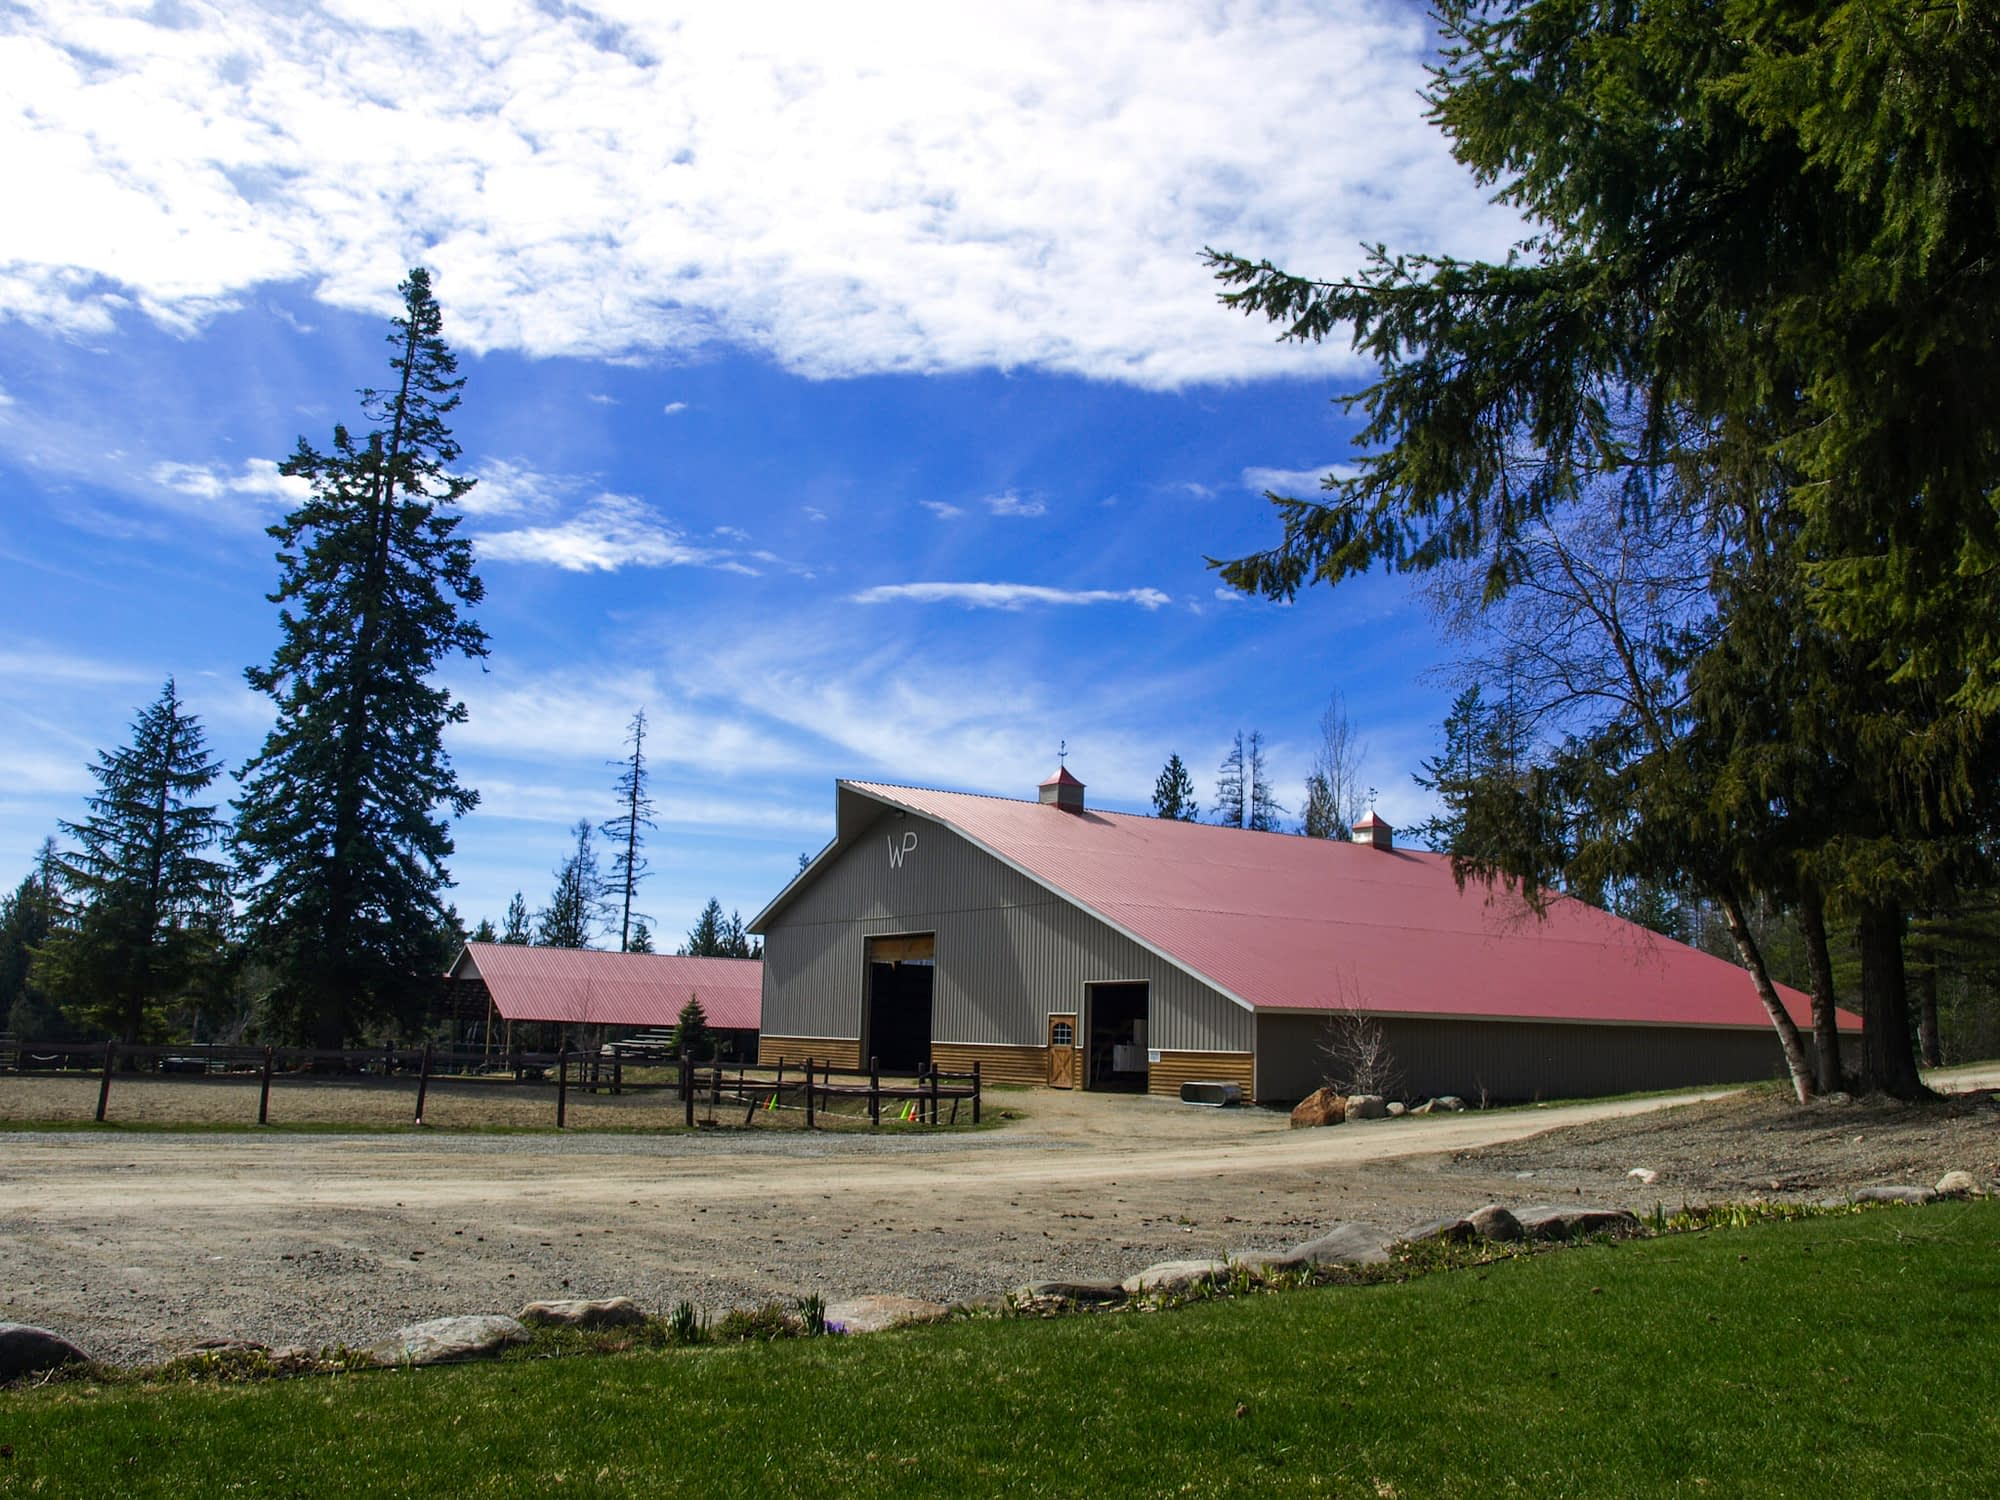 Large grey indoor arena barn with red roof and blue sky above